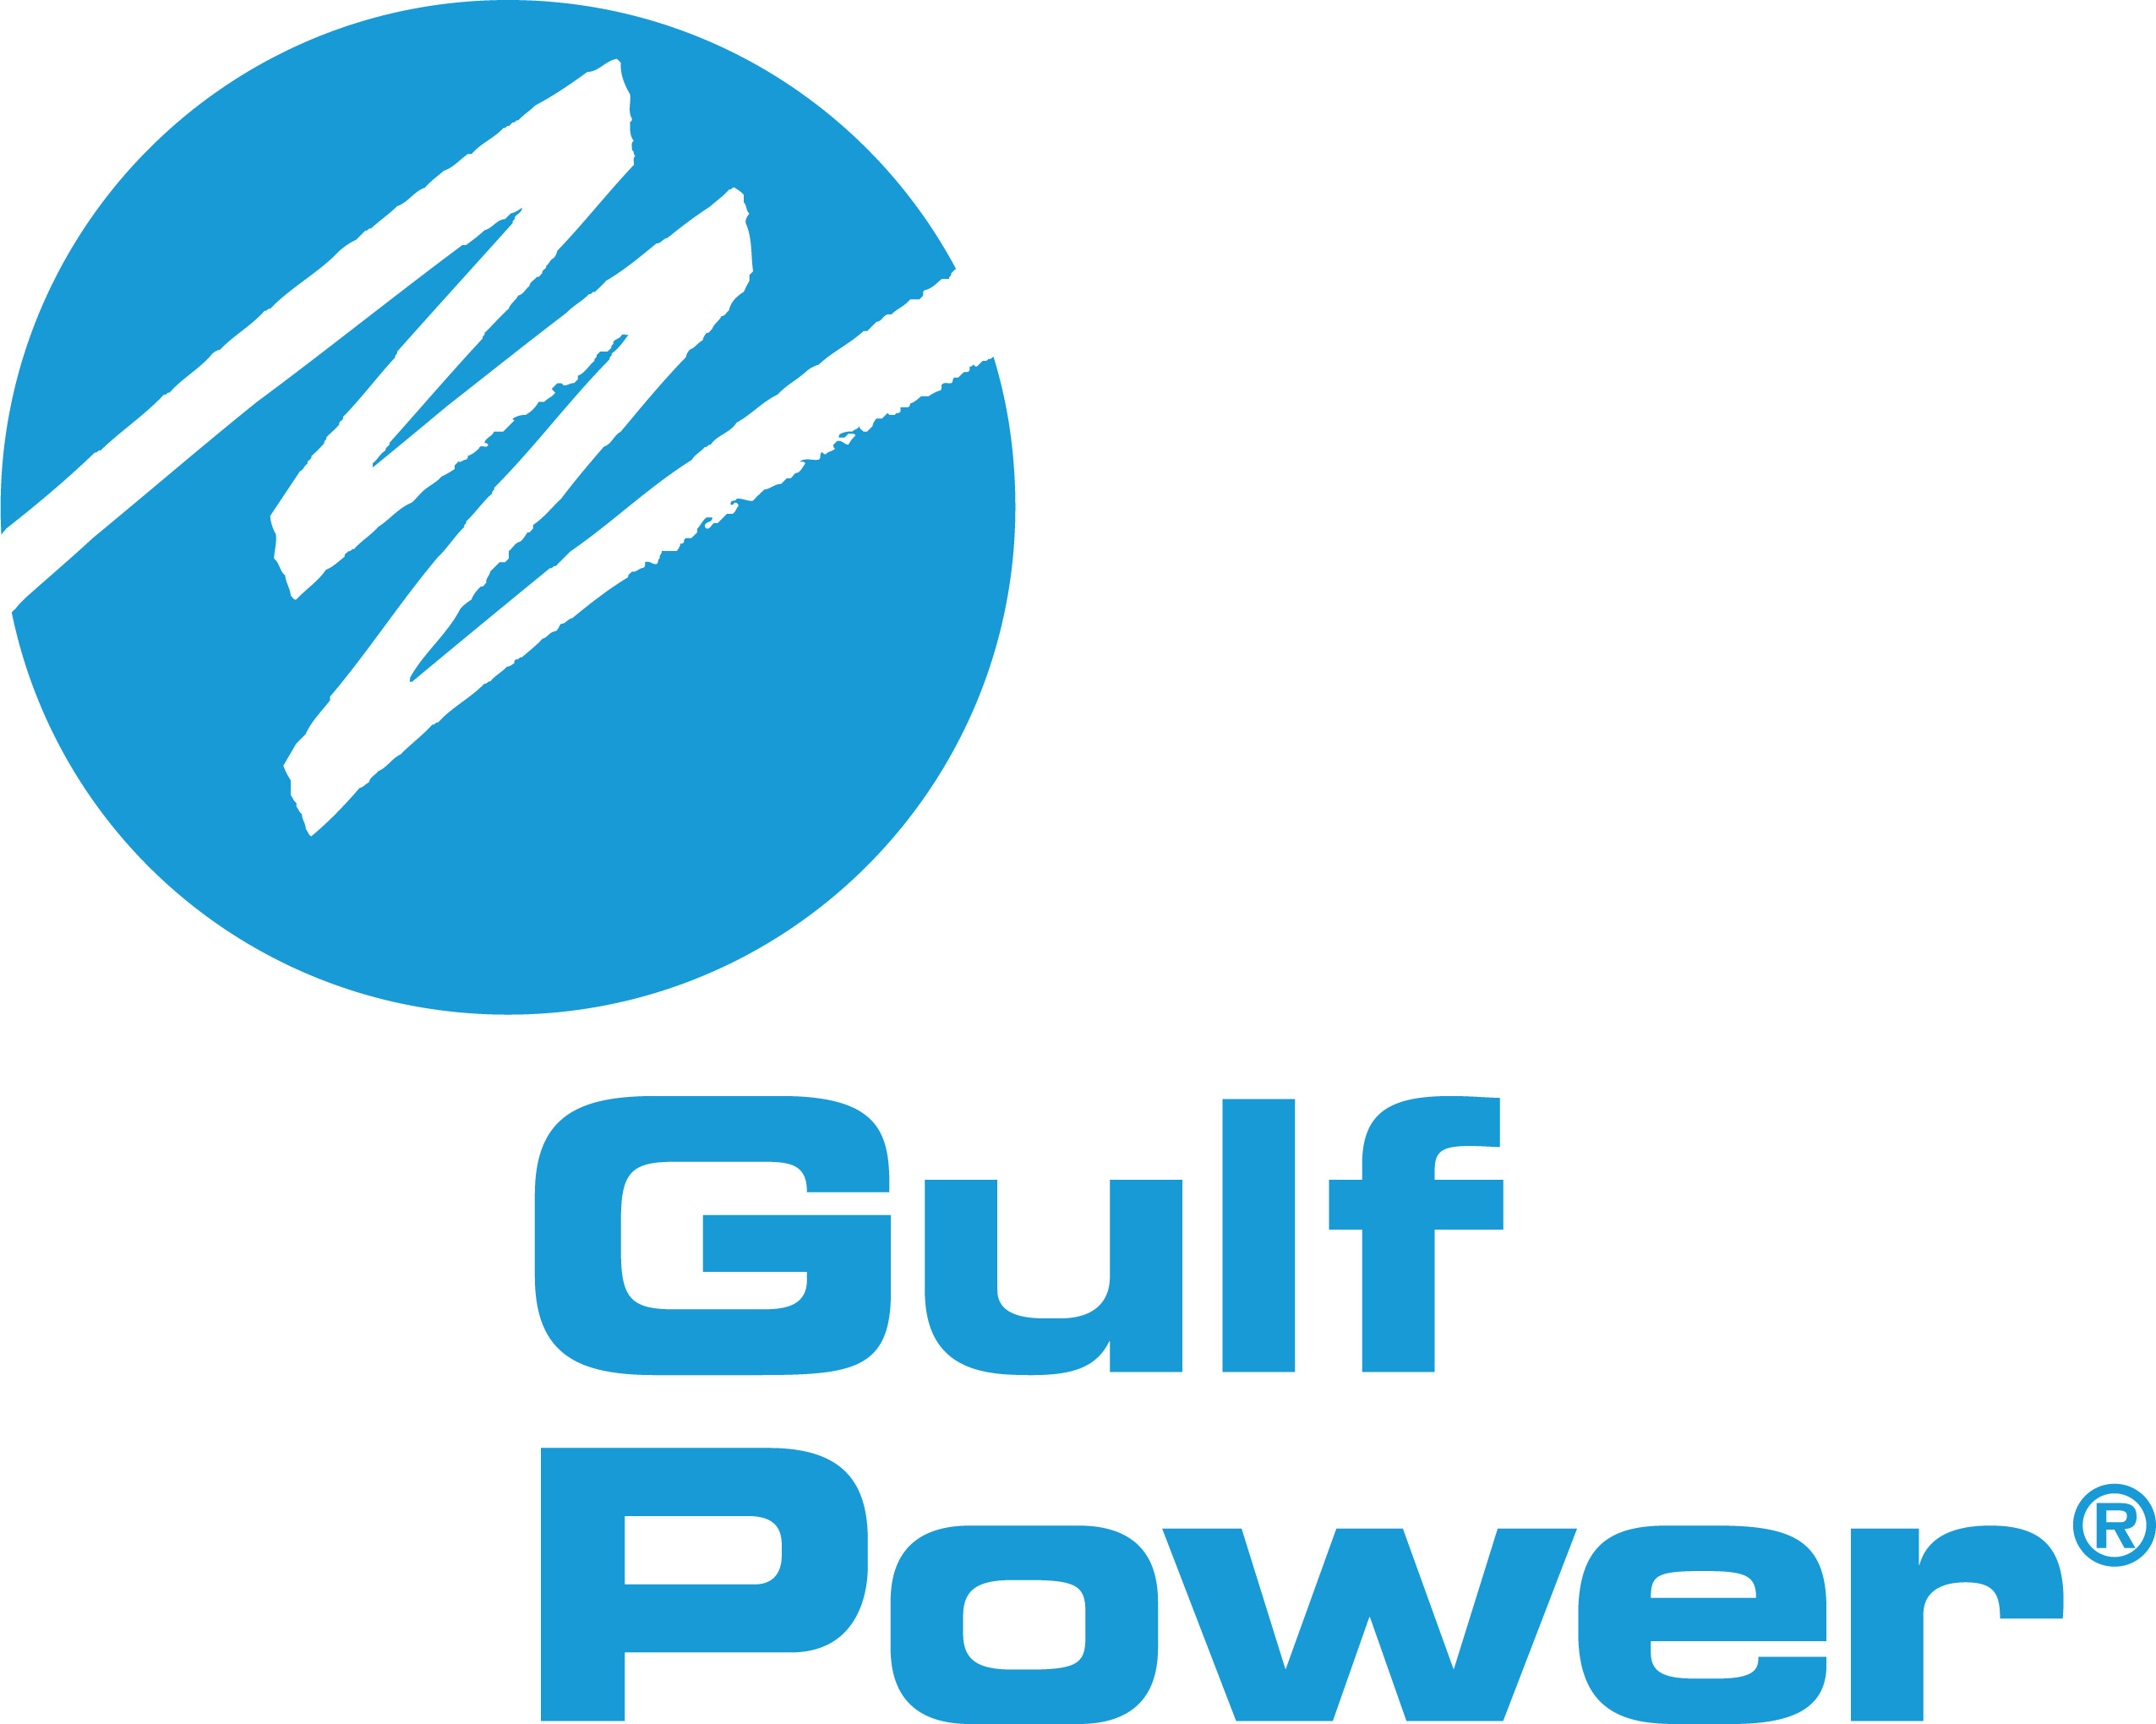 Lunch is sponsored by Gulf Power